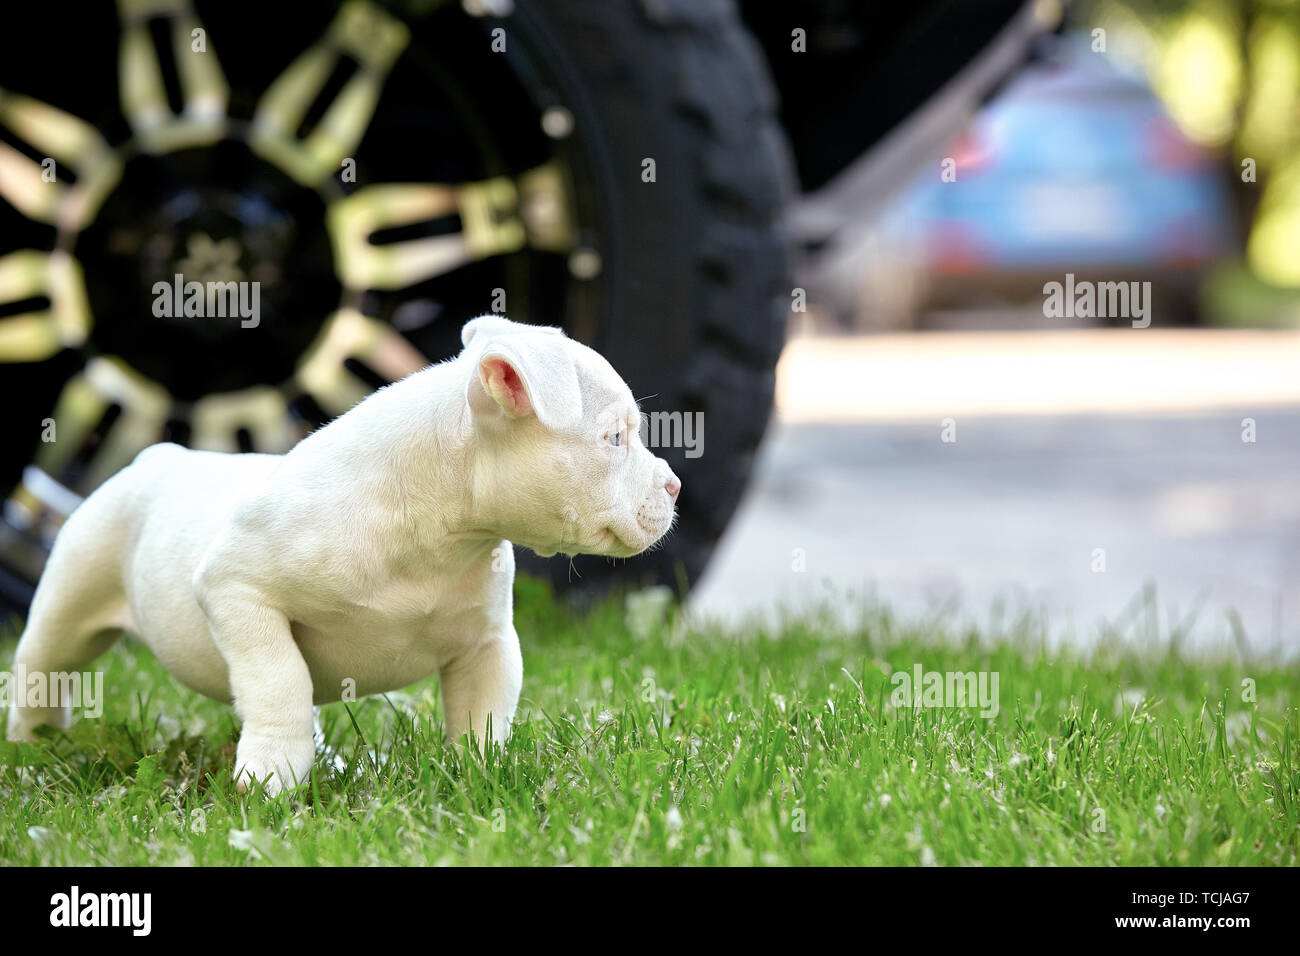 Cute puppy playing on the grass on the background of the car. Concept of the first steps of life, animals, a new generation. Puppy American Bull. Stock Photo